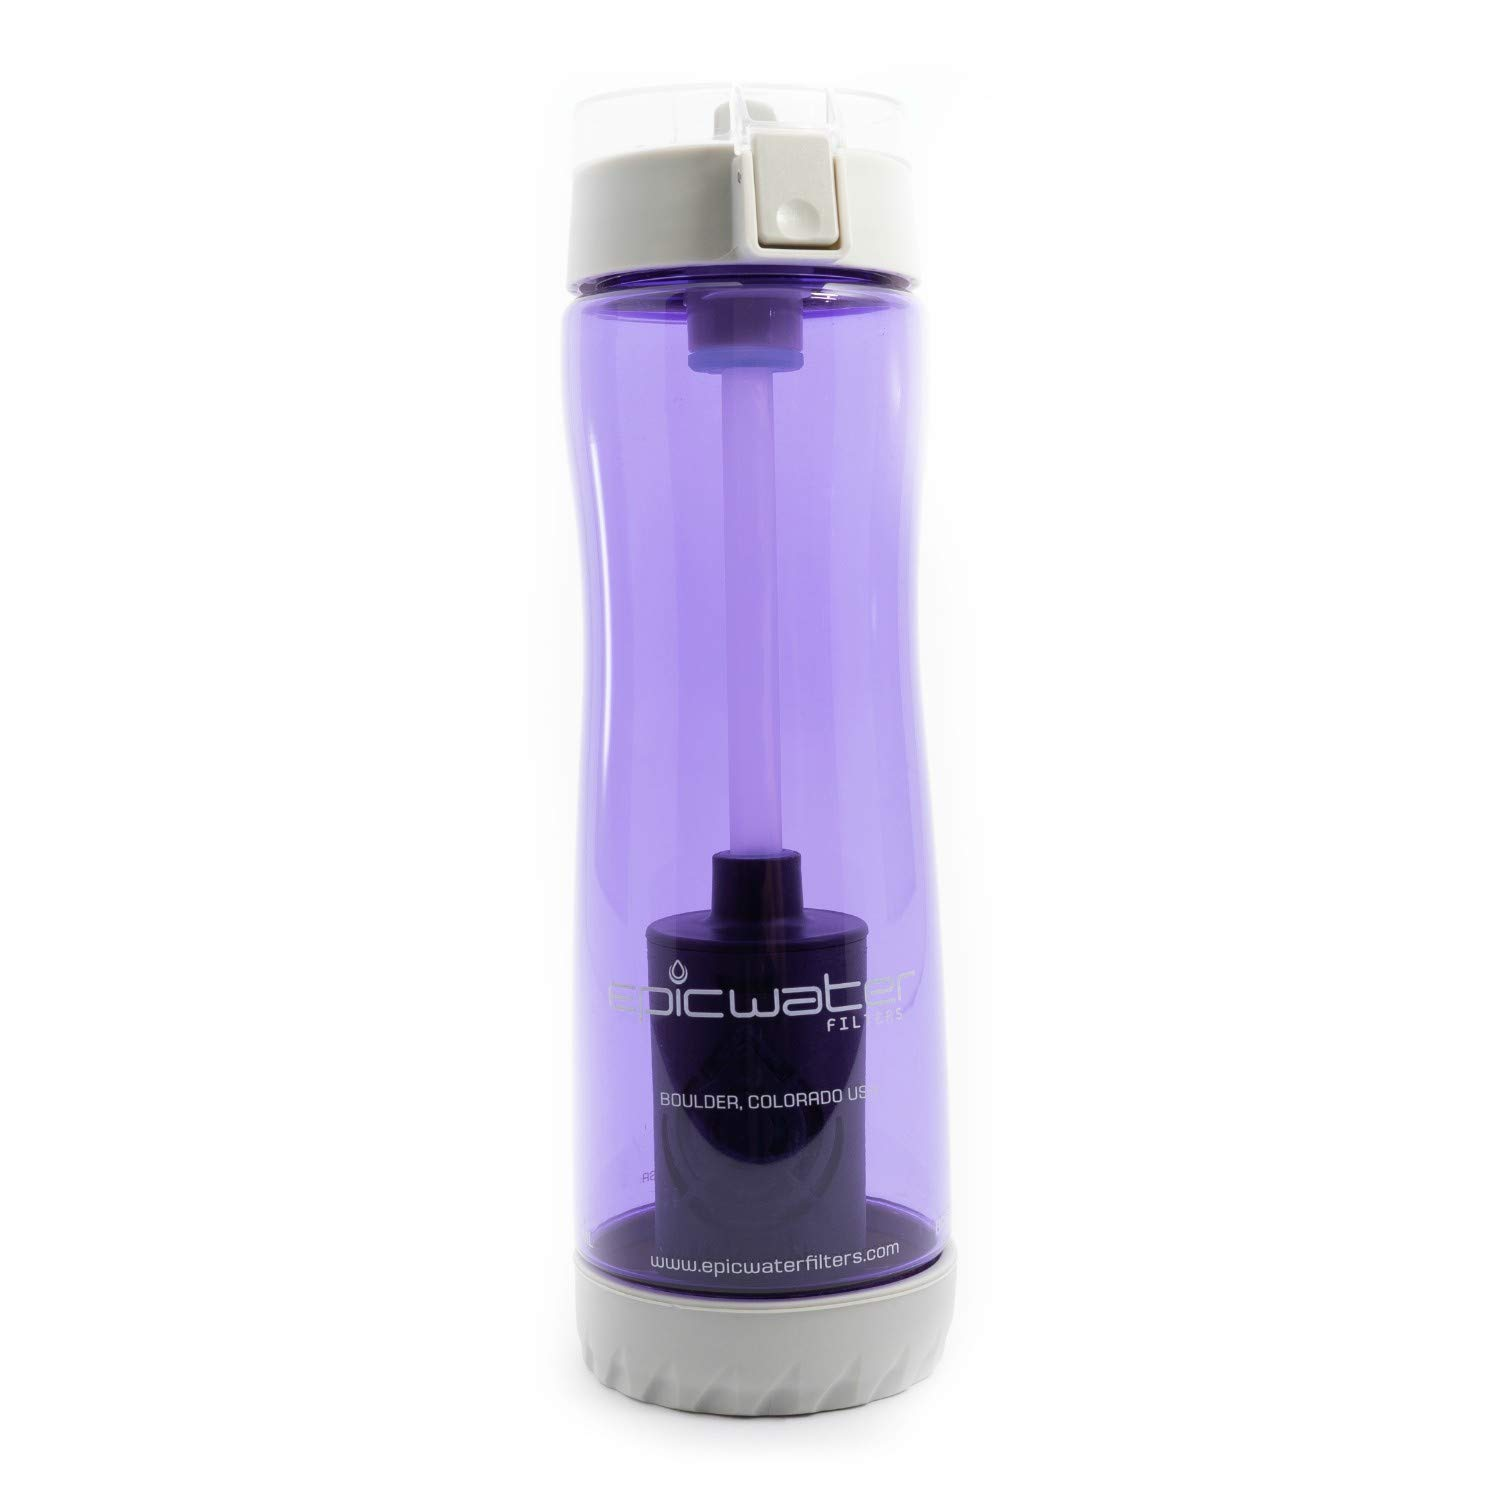 Epic Tritan Series Water Filtration Bottle (with 1 Everyday Filter) | Removes Lead, Chromium 6, Fluoride, Chlorine, Heavy Metals, PFOA/PFOS, Plastic Fibers & 65+ More Tap Water Contaminants | 800mL (Purple) Epic Life Inc.